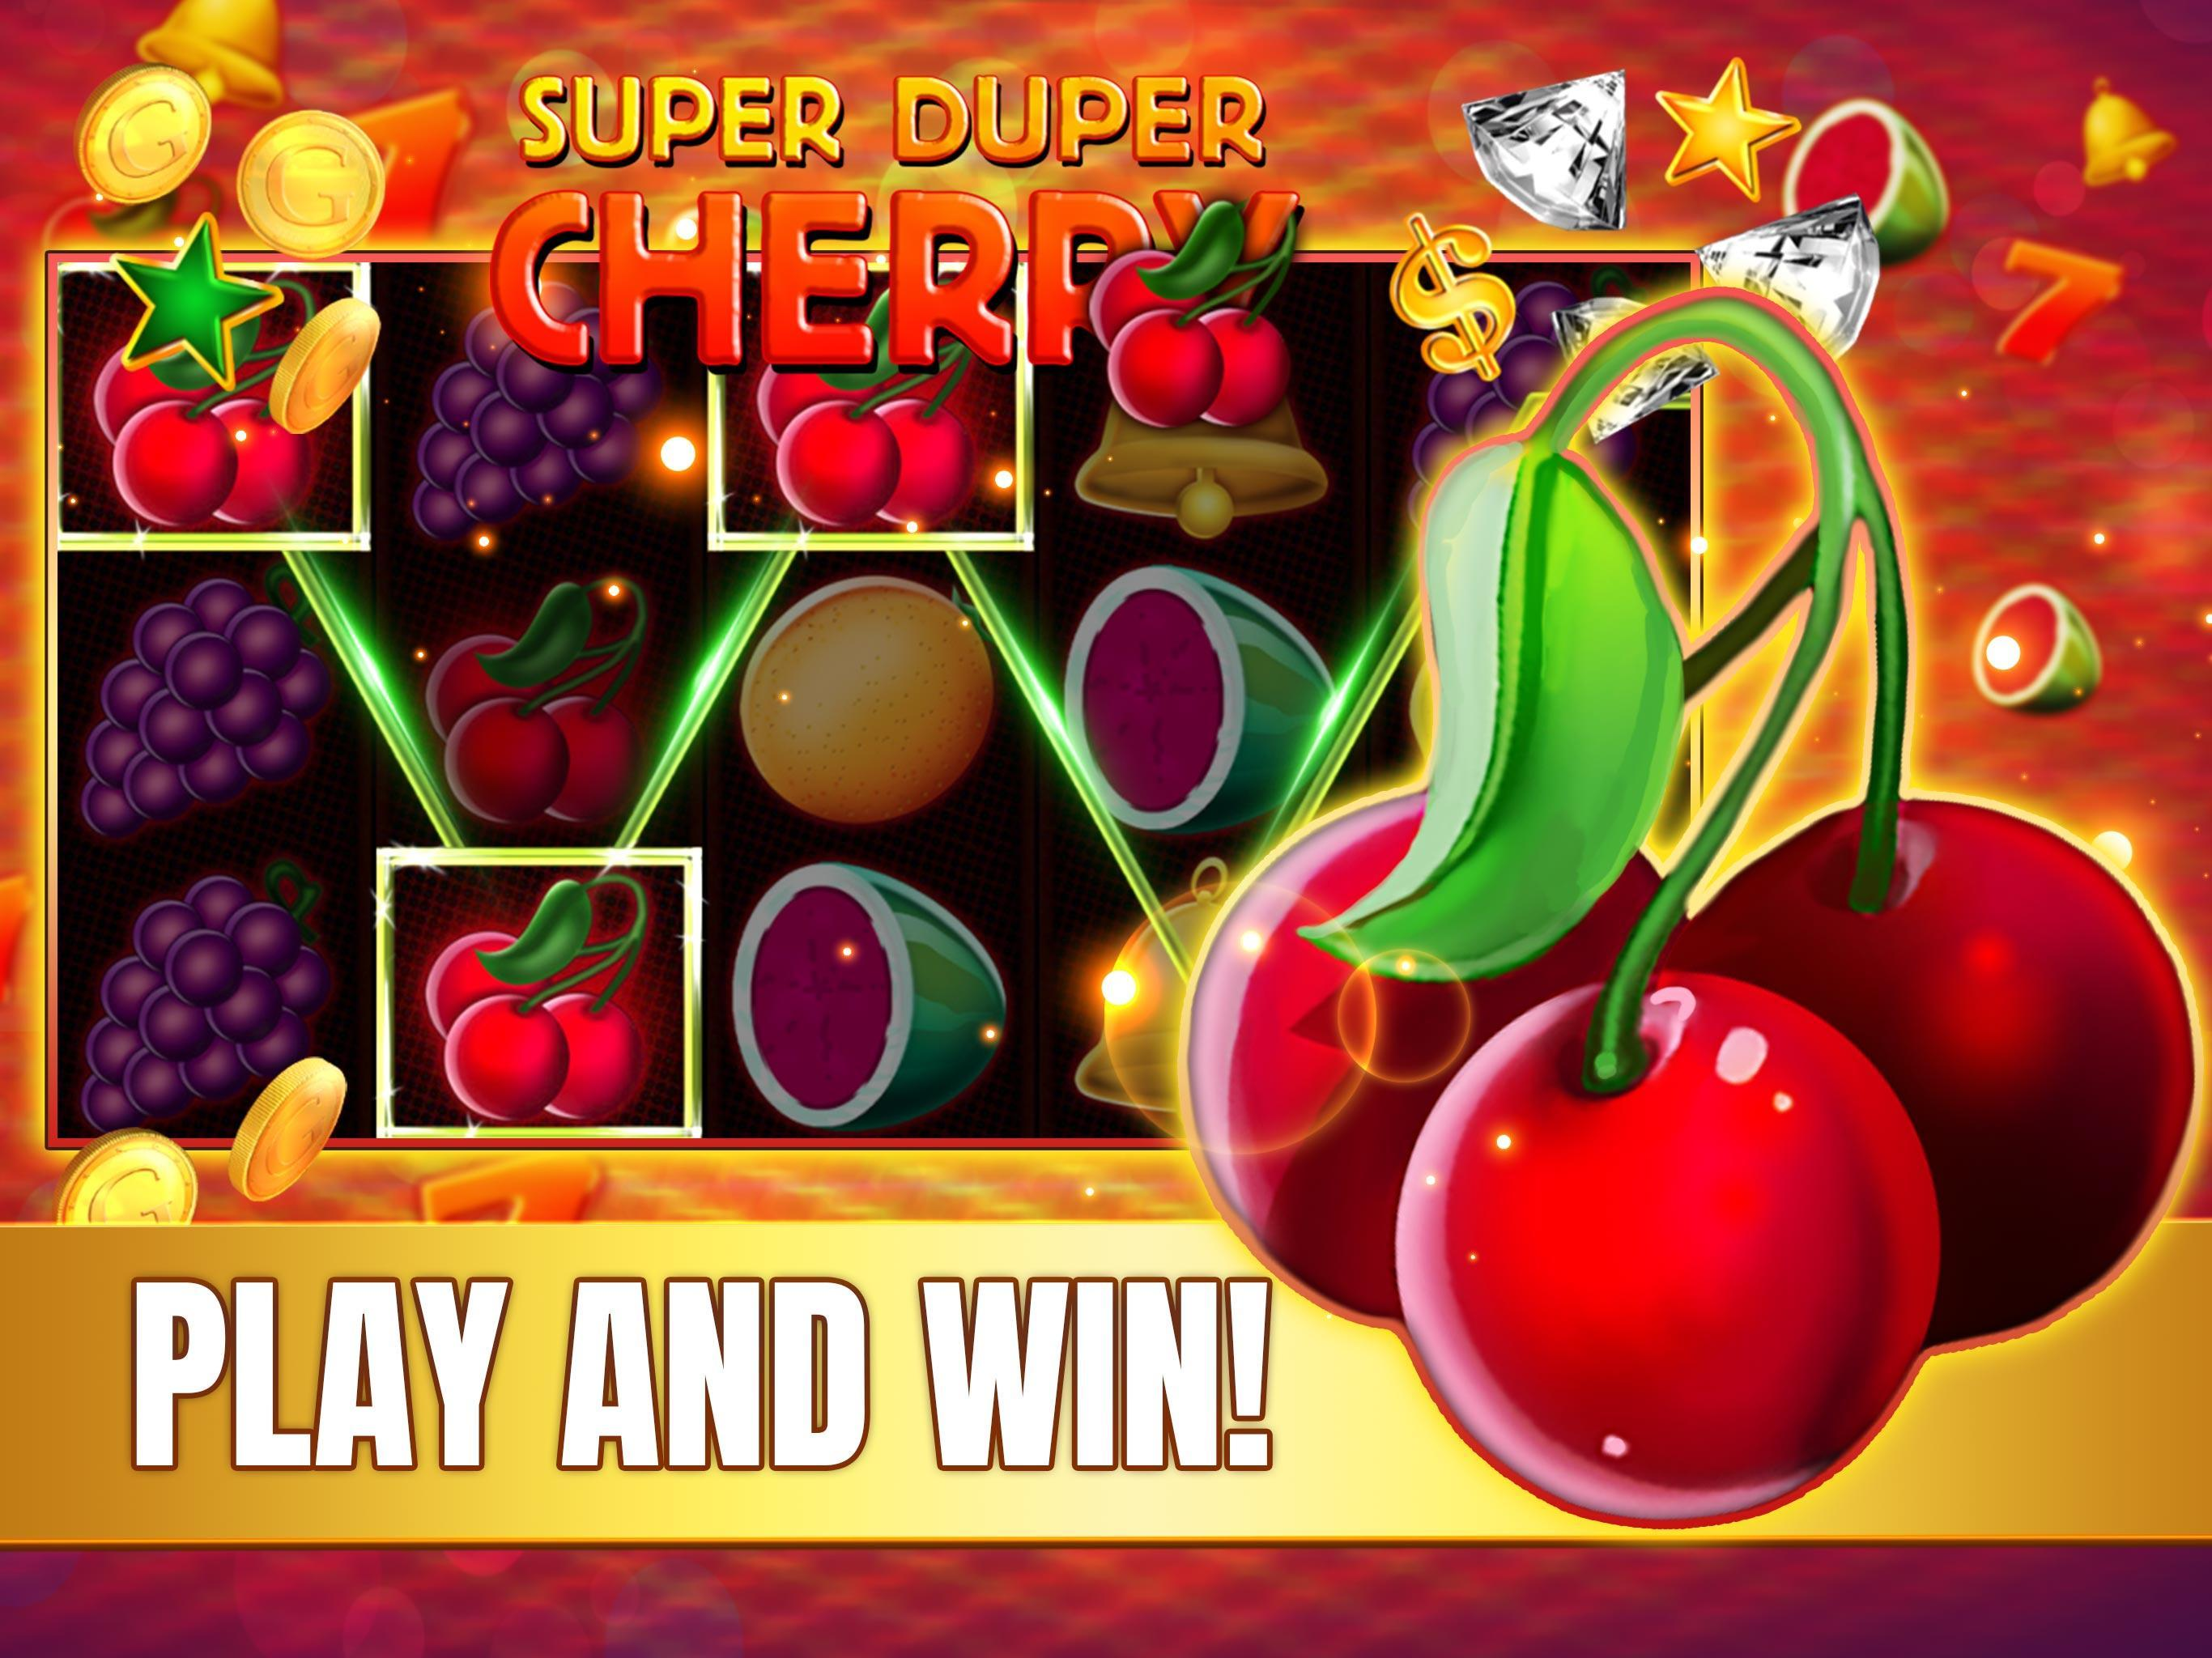 Super duper cherry slot free